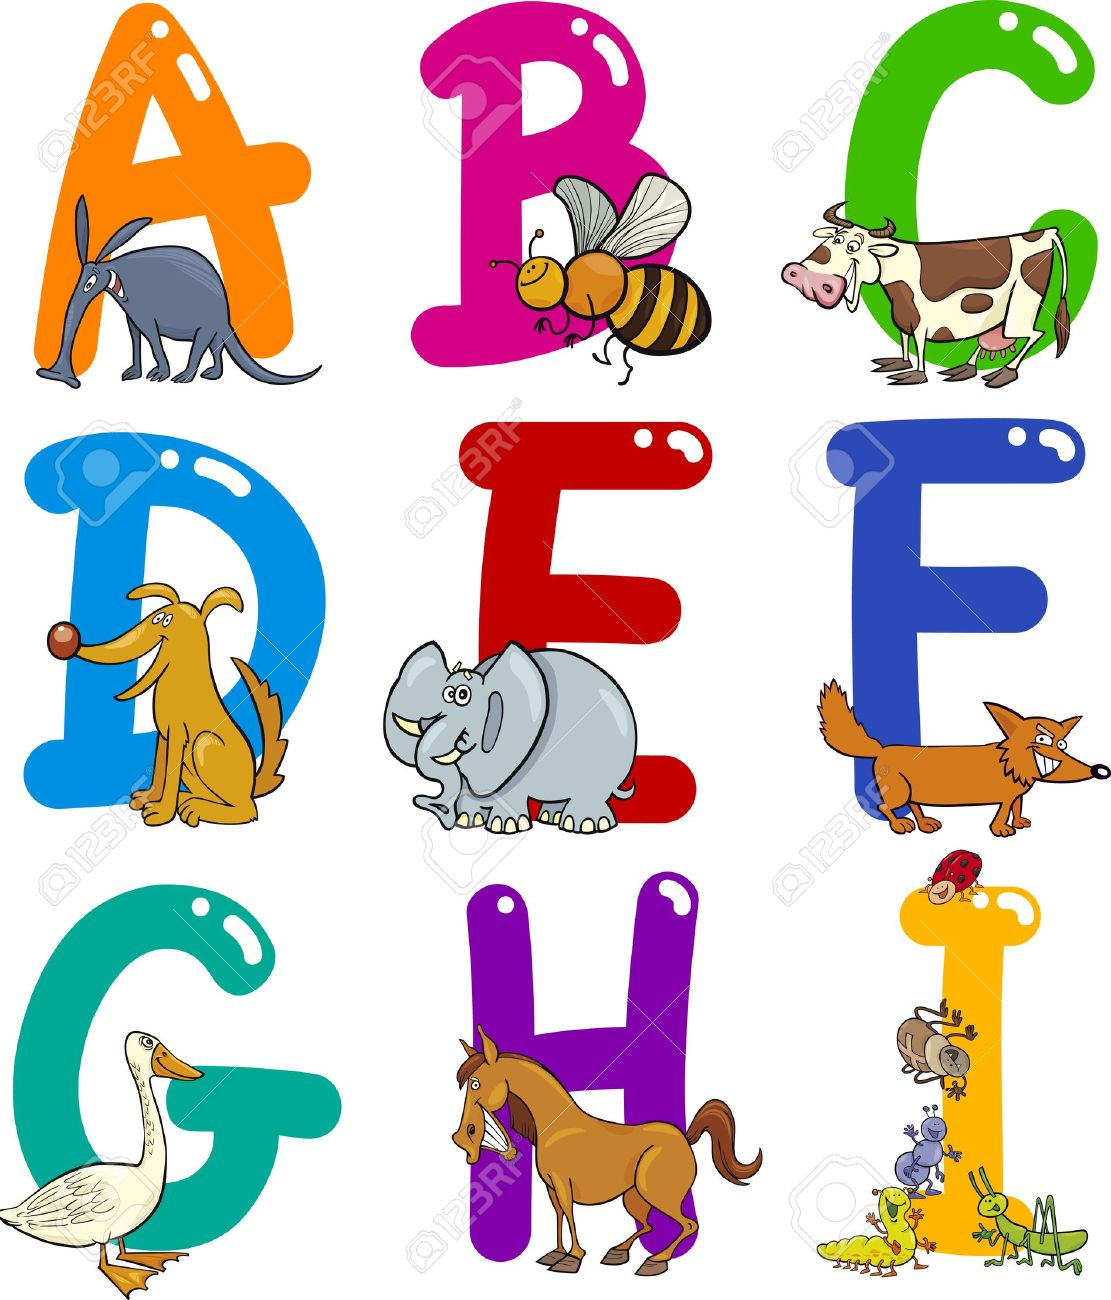 1938 animal and alphabet clipart.